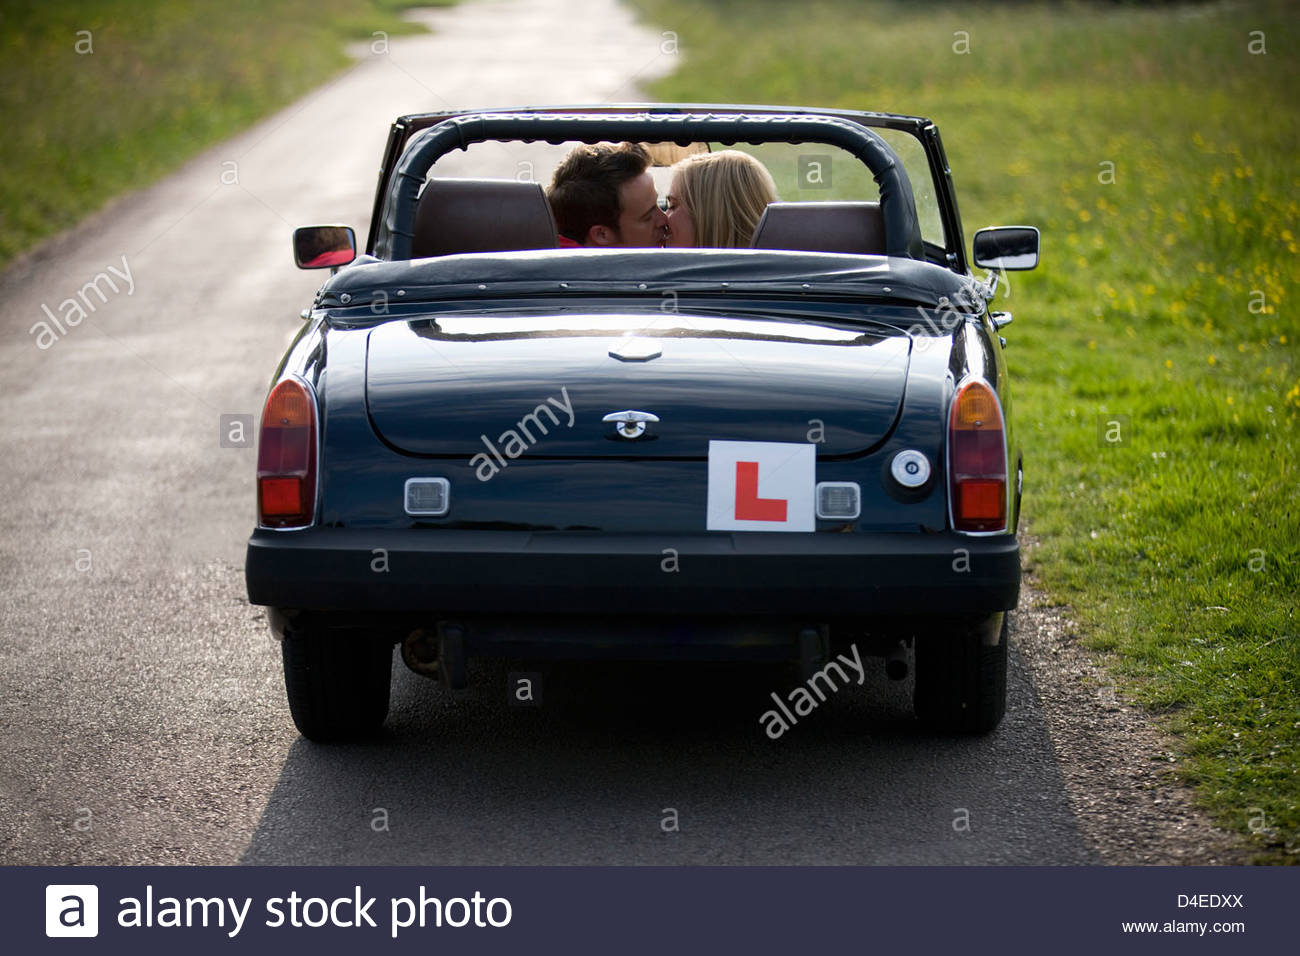 A young couple in a black sports car kissing, rear view Stock Photo